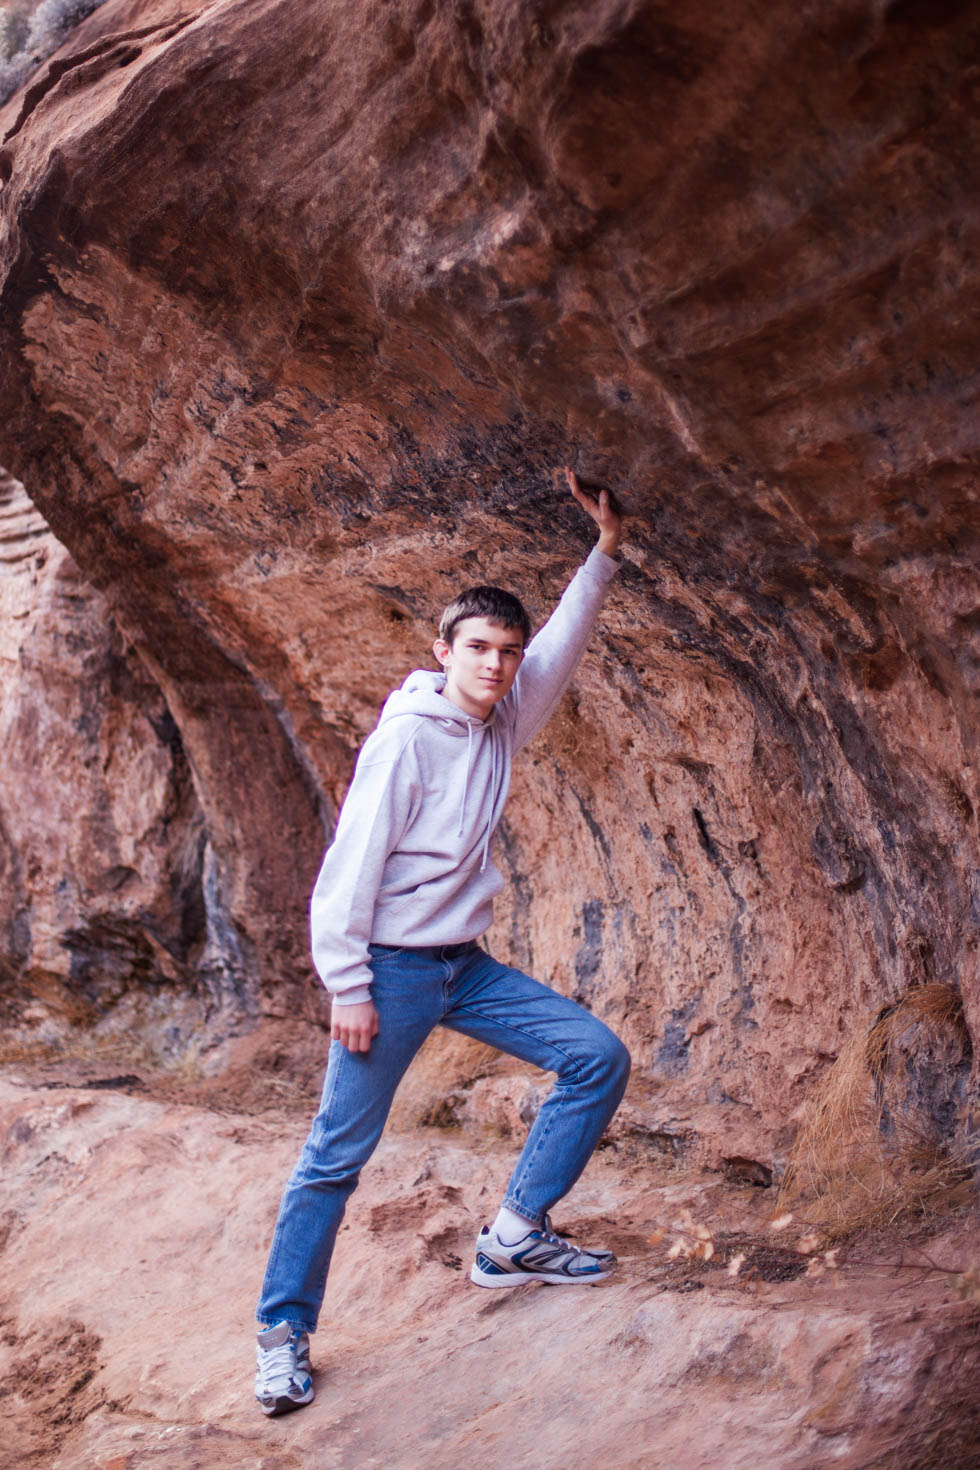 Hiking the Canyon Overlook Trail, Zion National Park, UT #vezzaniphotography